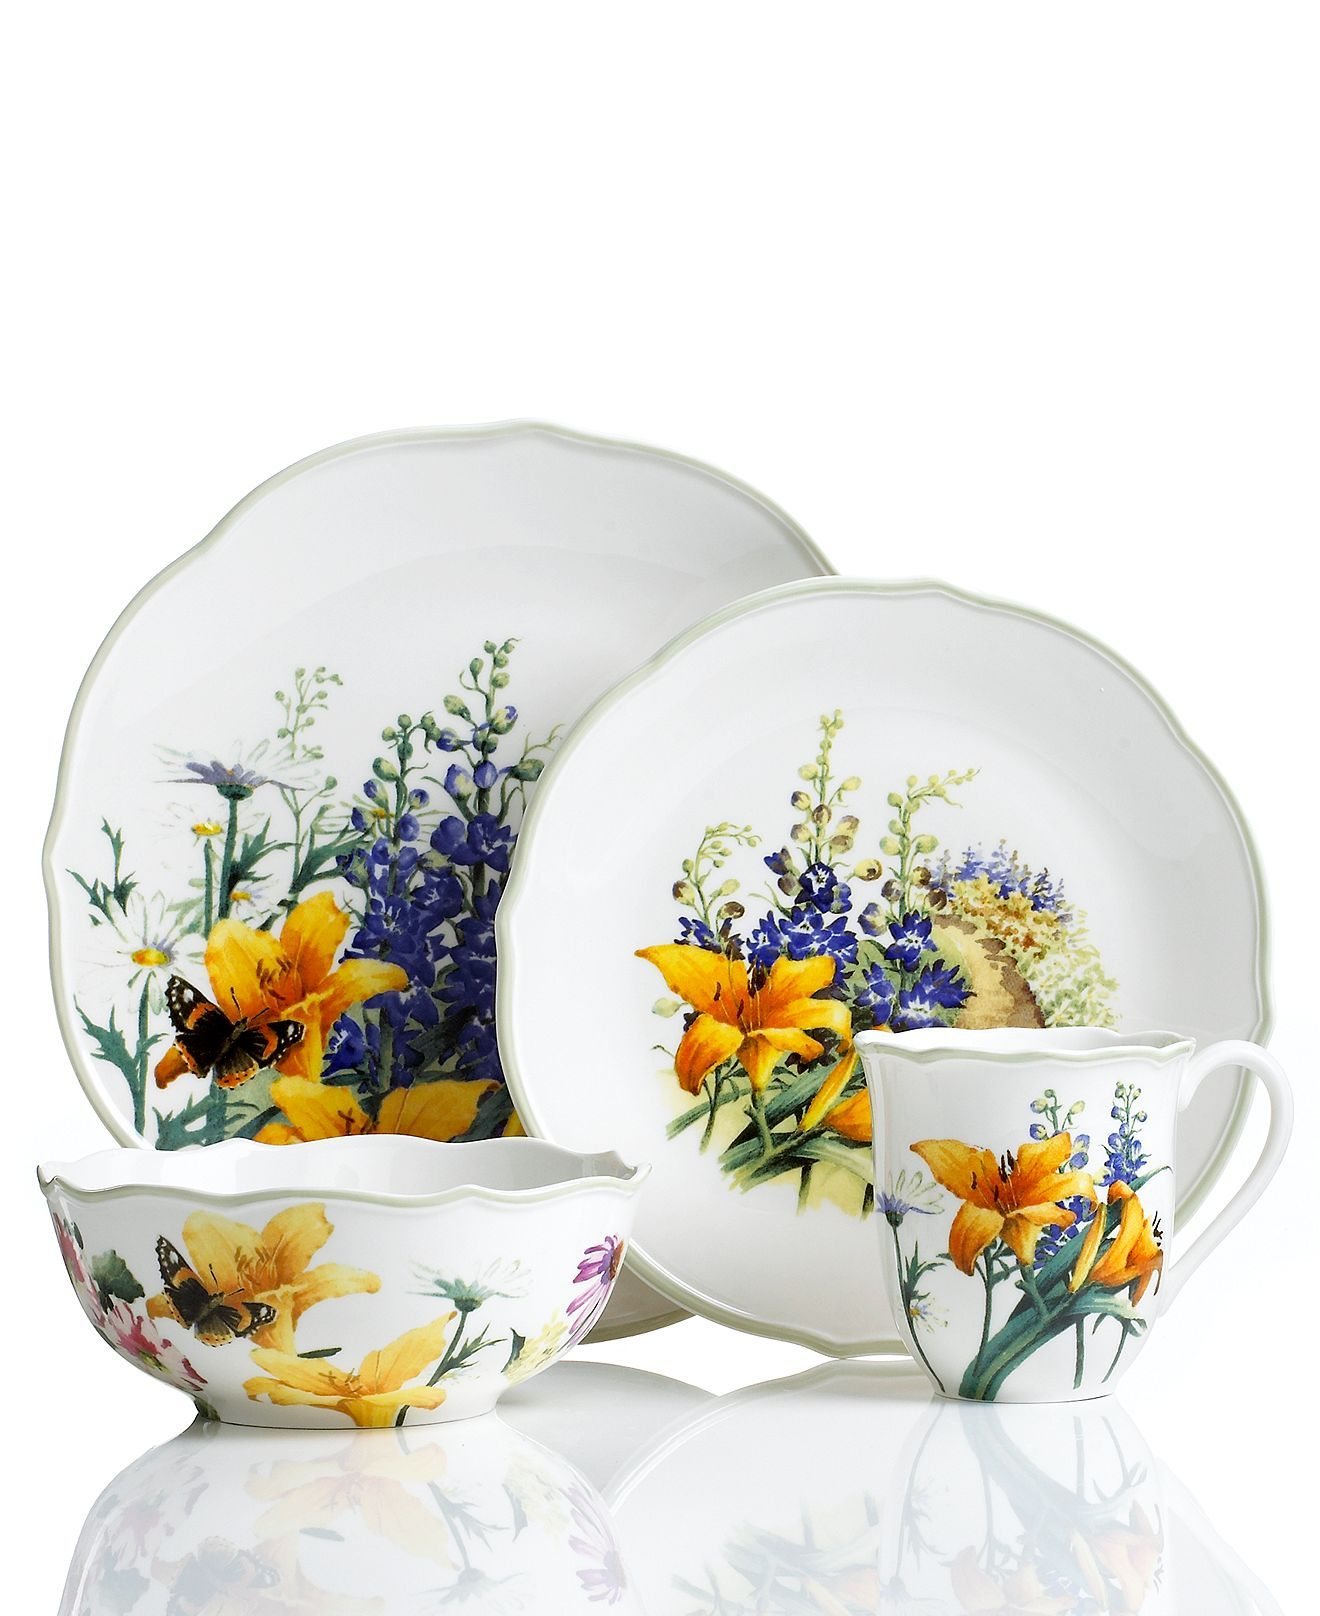 lenox dinnerware floral meadow daylily collection the floral